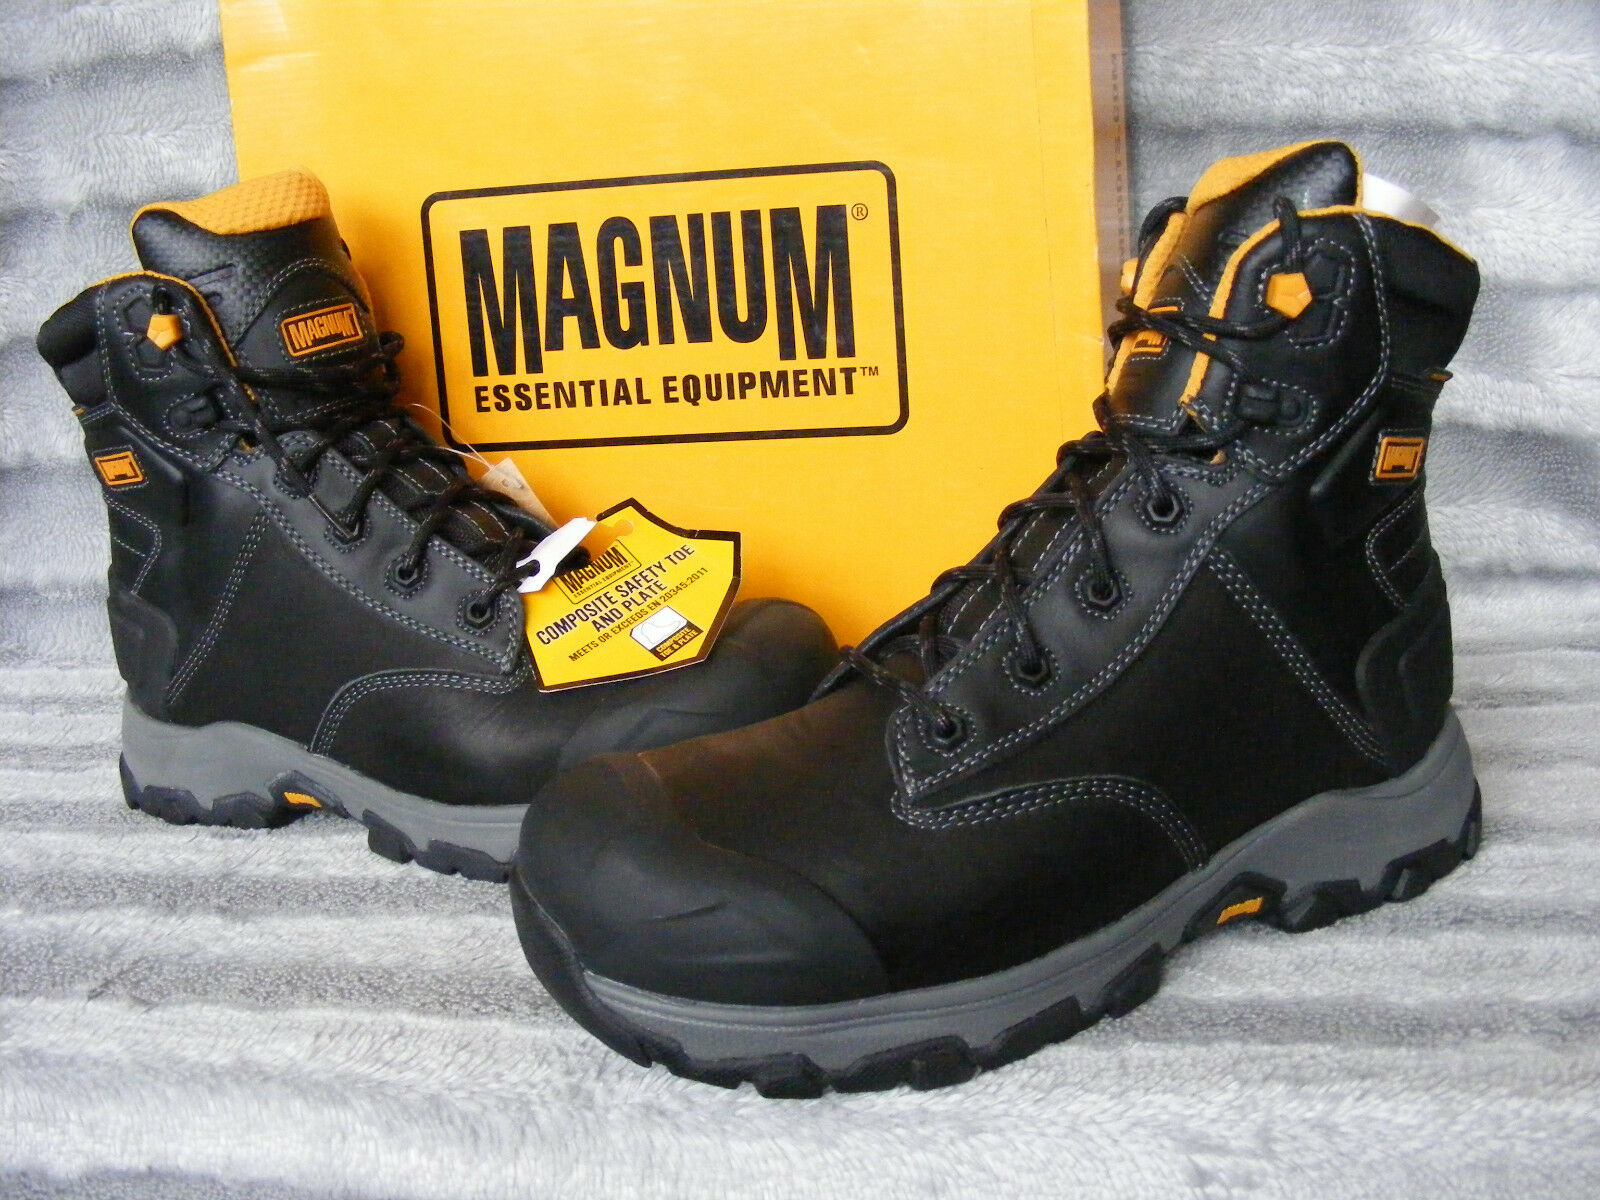 New Men's Magnum Hamburg 6.0 Composite Toe & Plate Safety Boots US 9